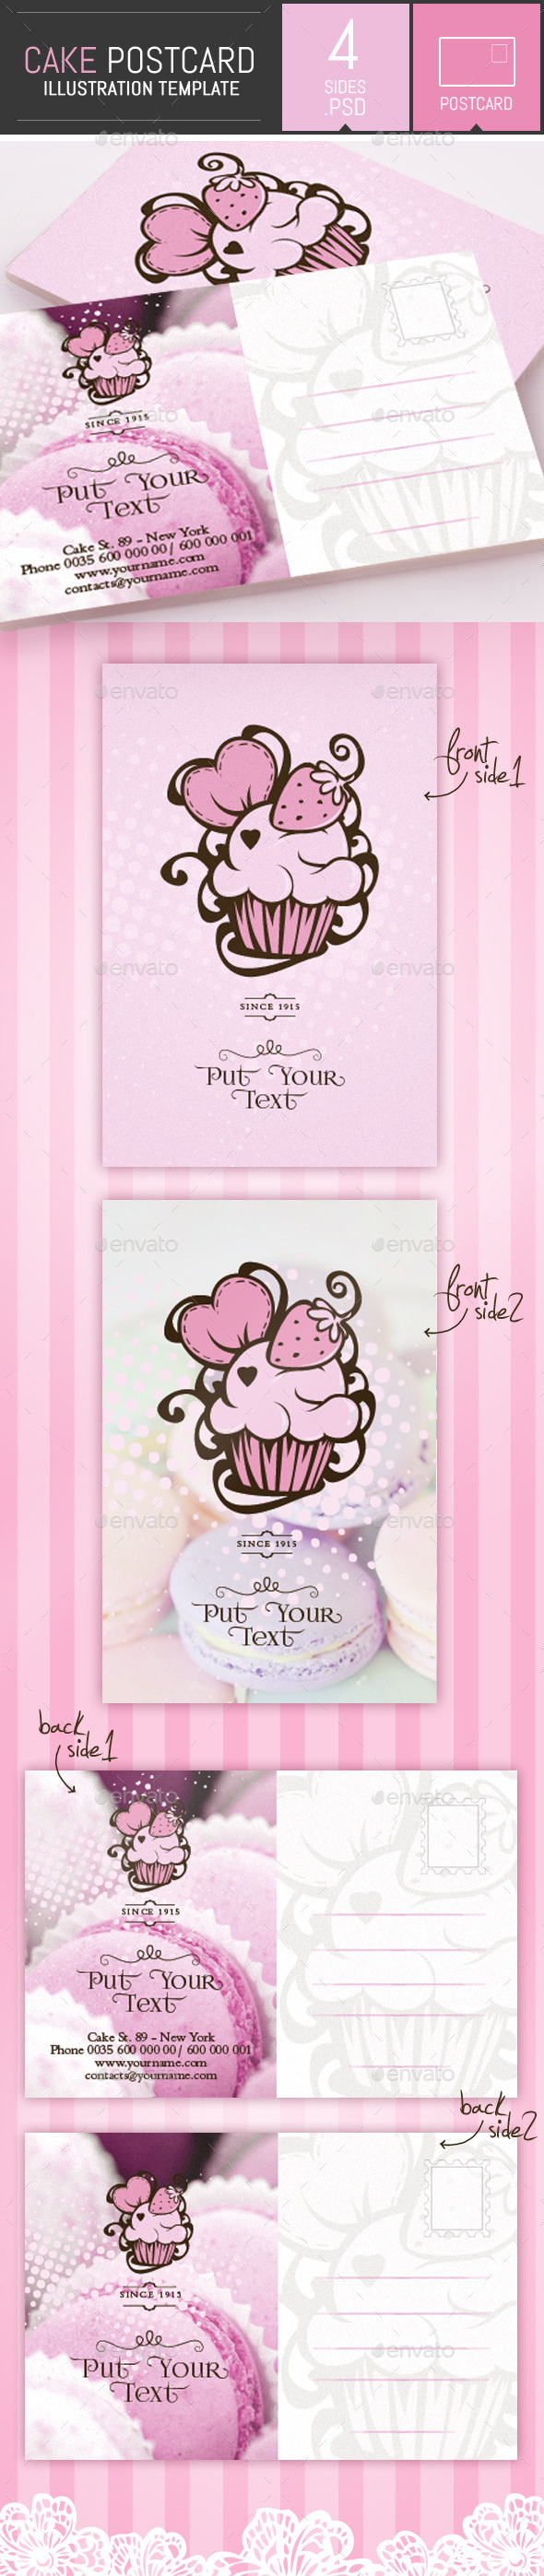 Cake and Cupcake Business Postcard Template - Cards & Invites Print Templates